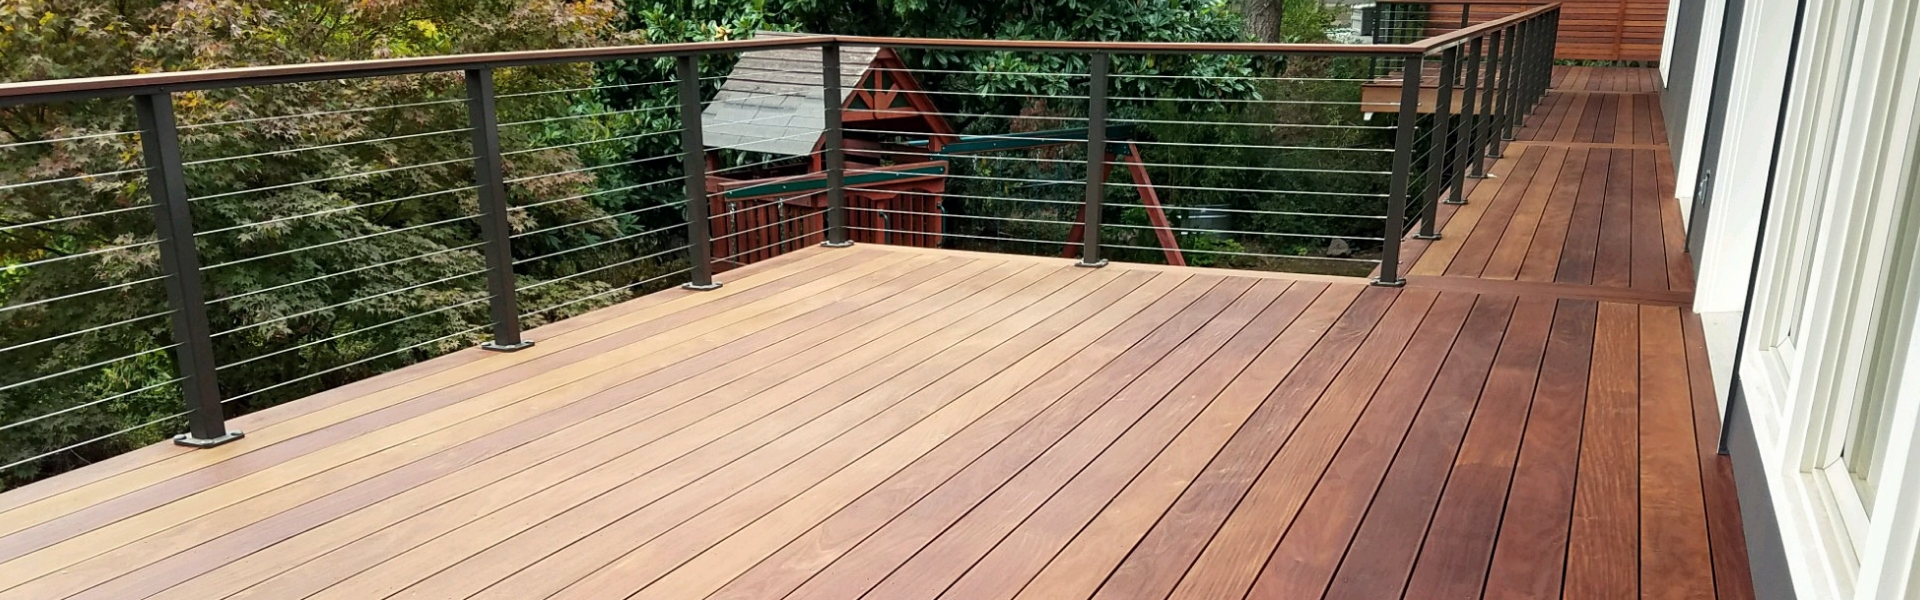 Outdoor Living Space On A Budget Decks